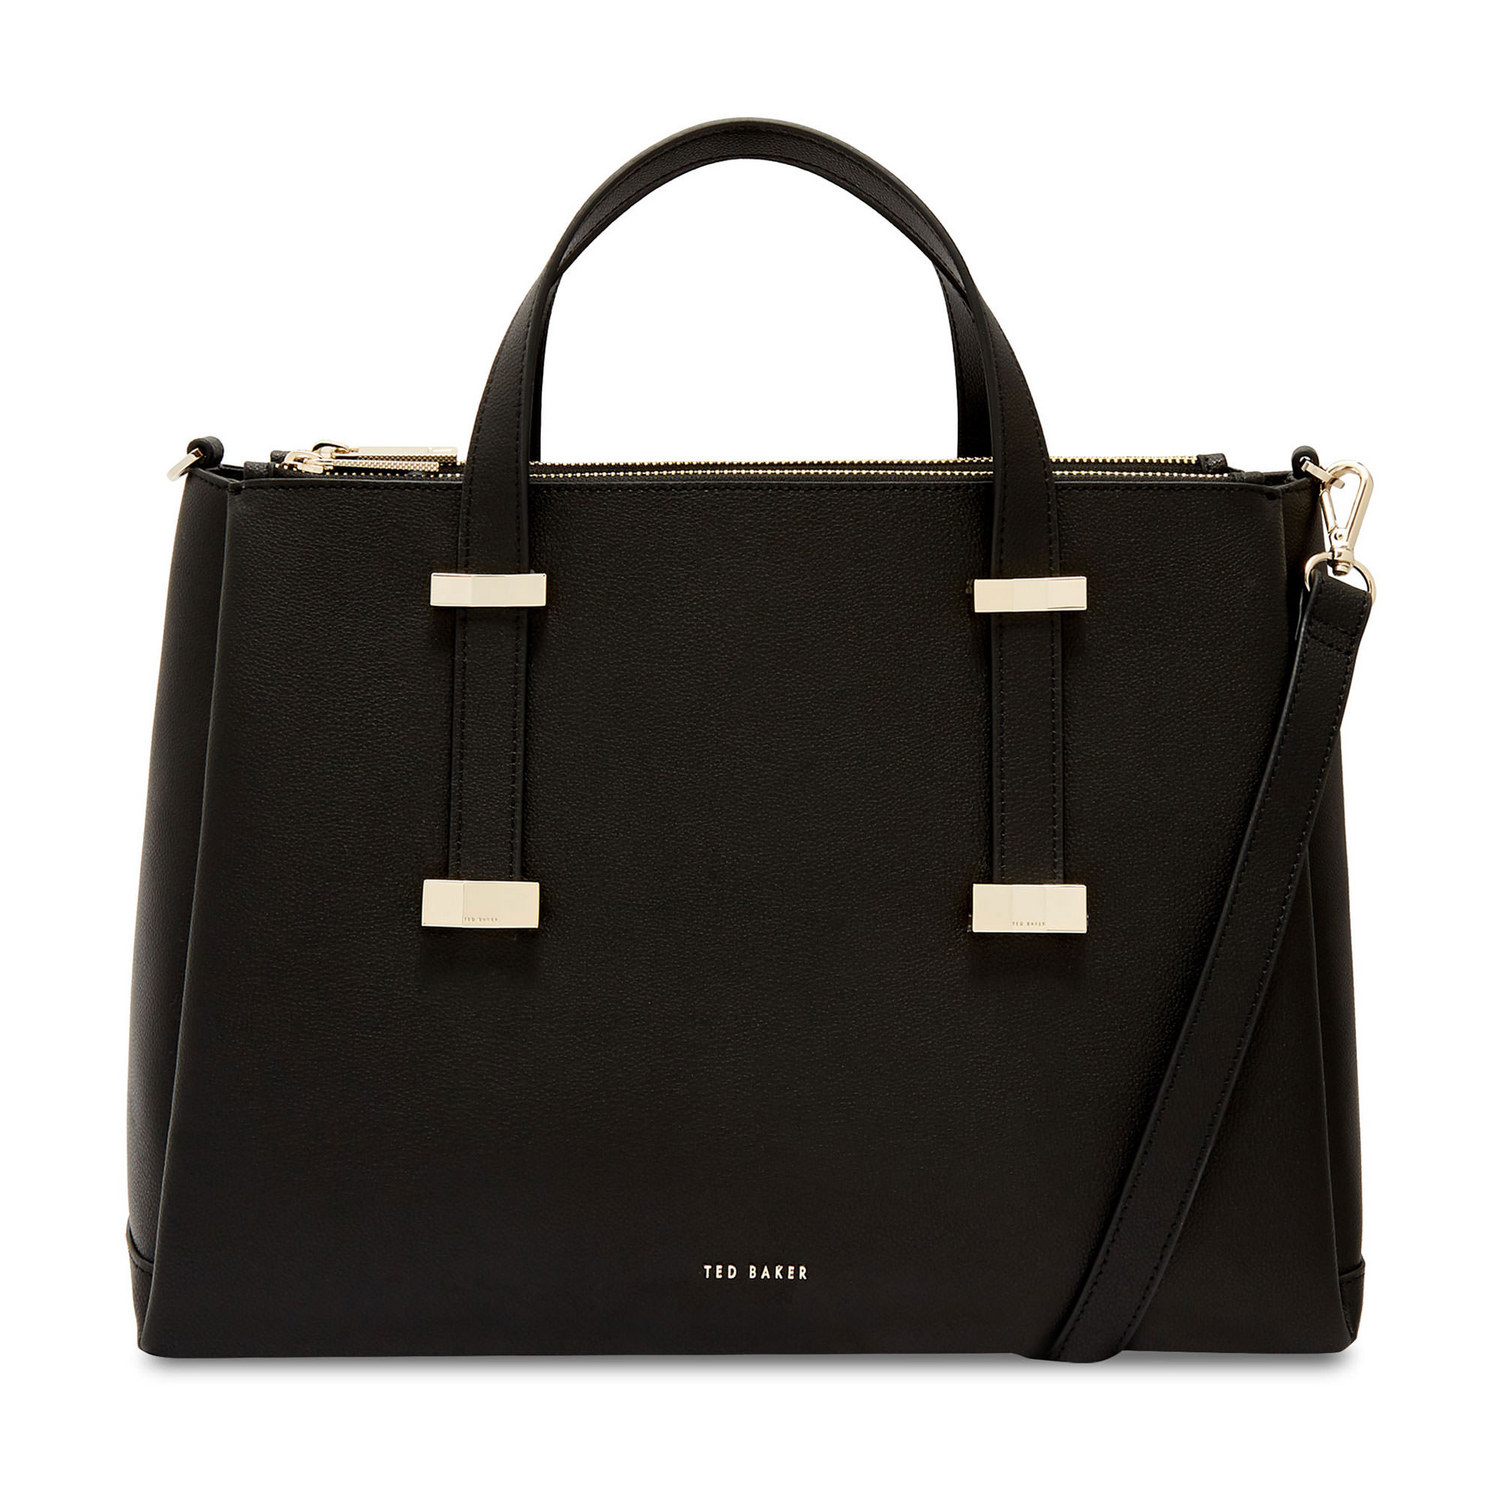 Ted Baker Judyy Tote Bag